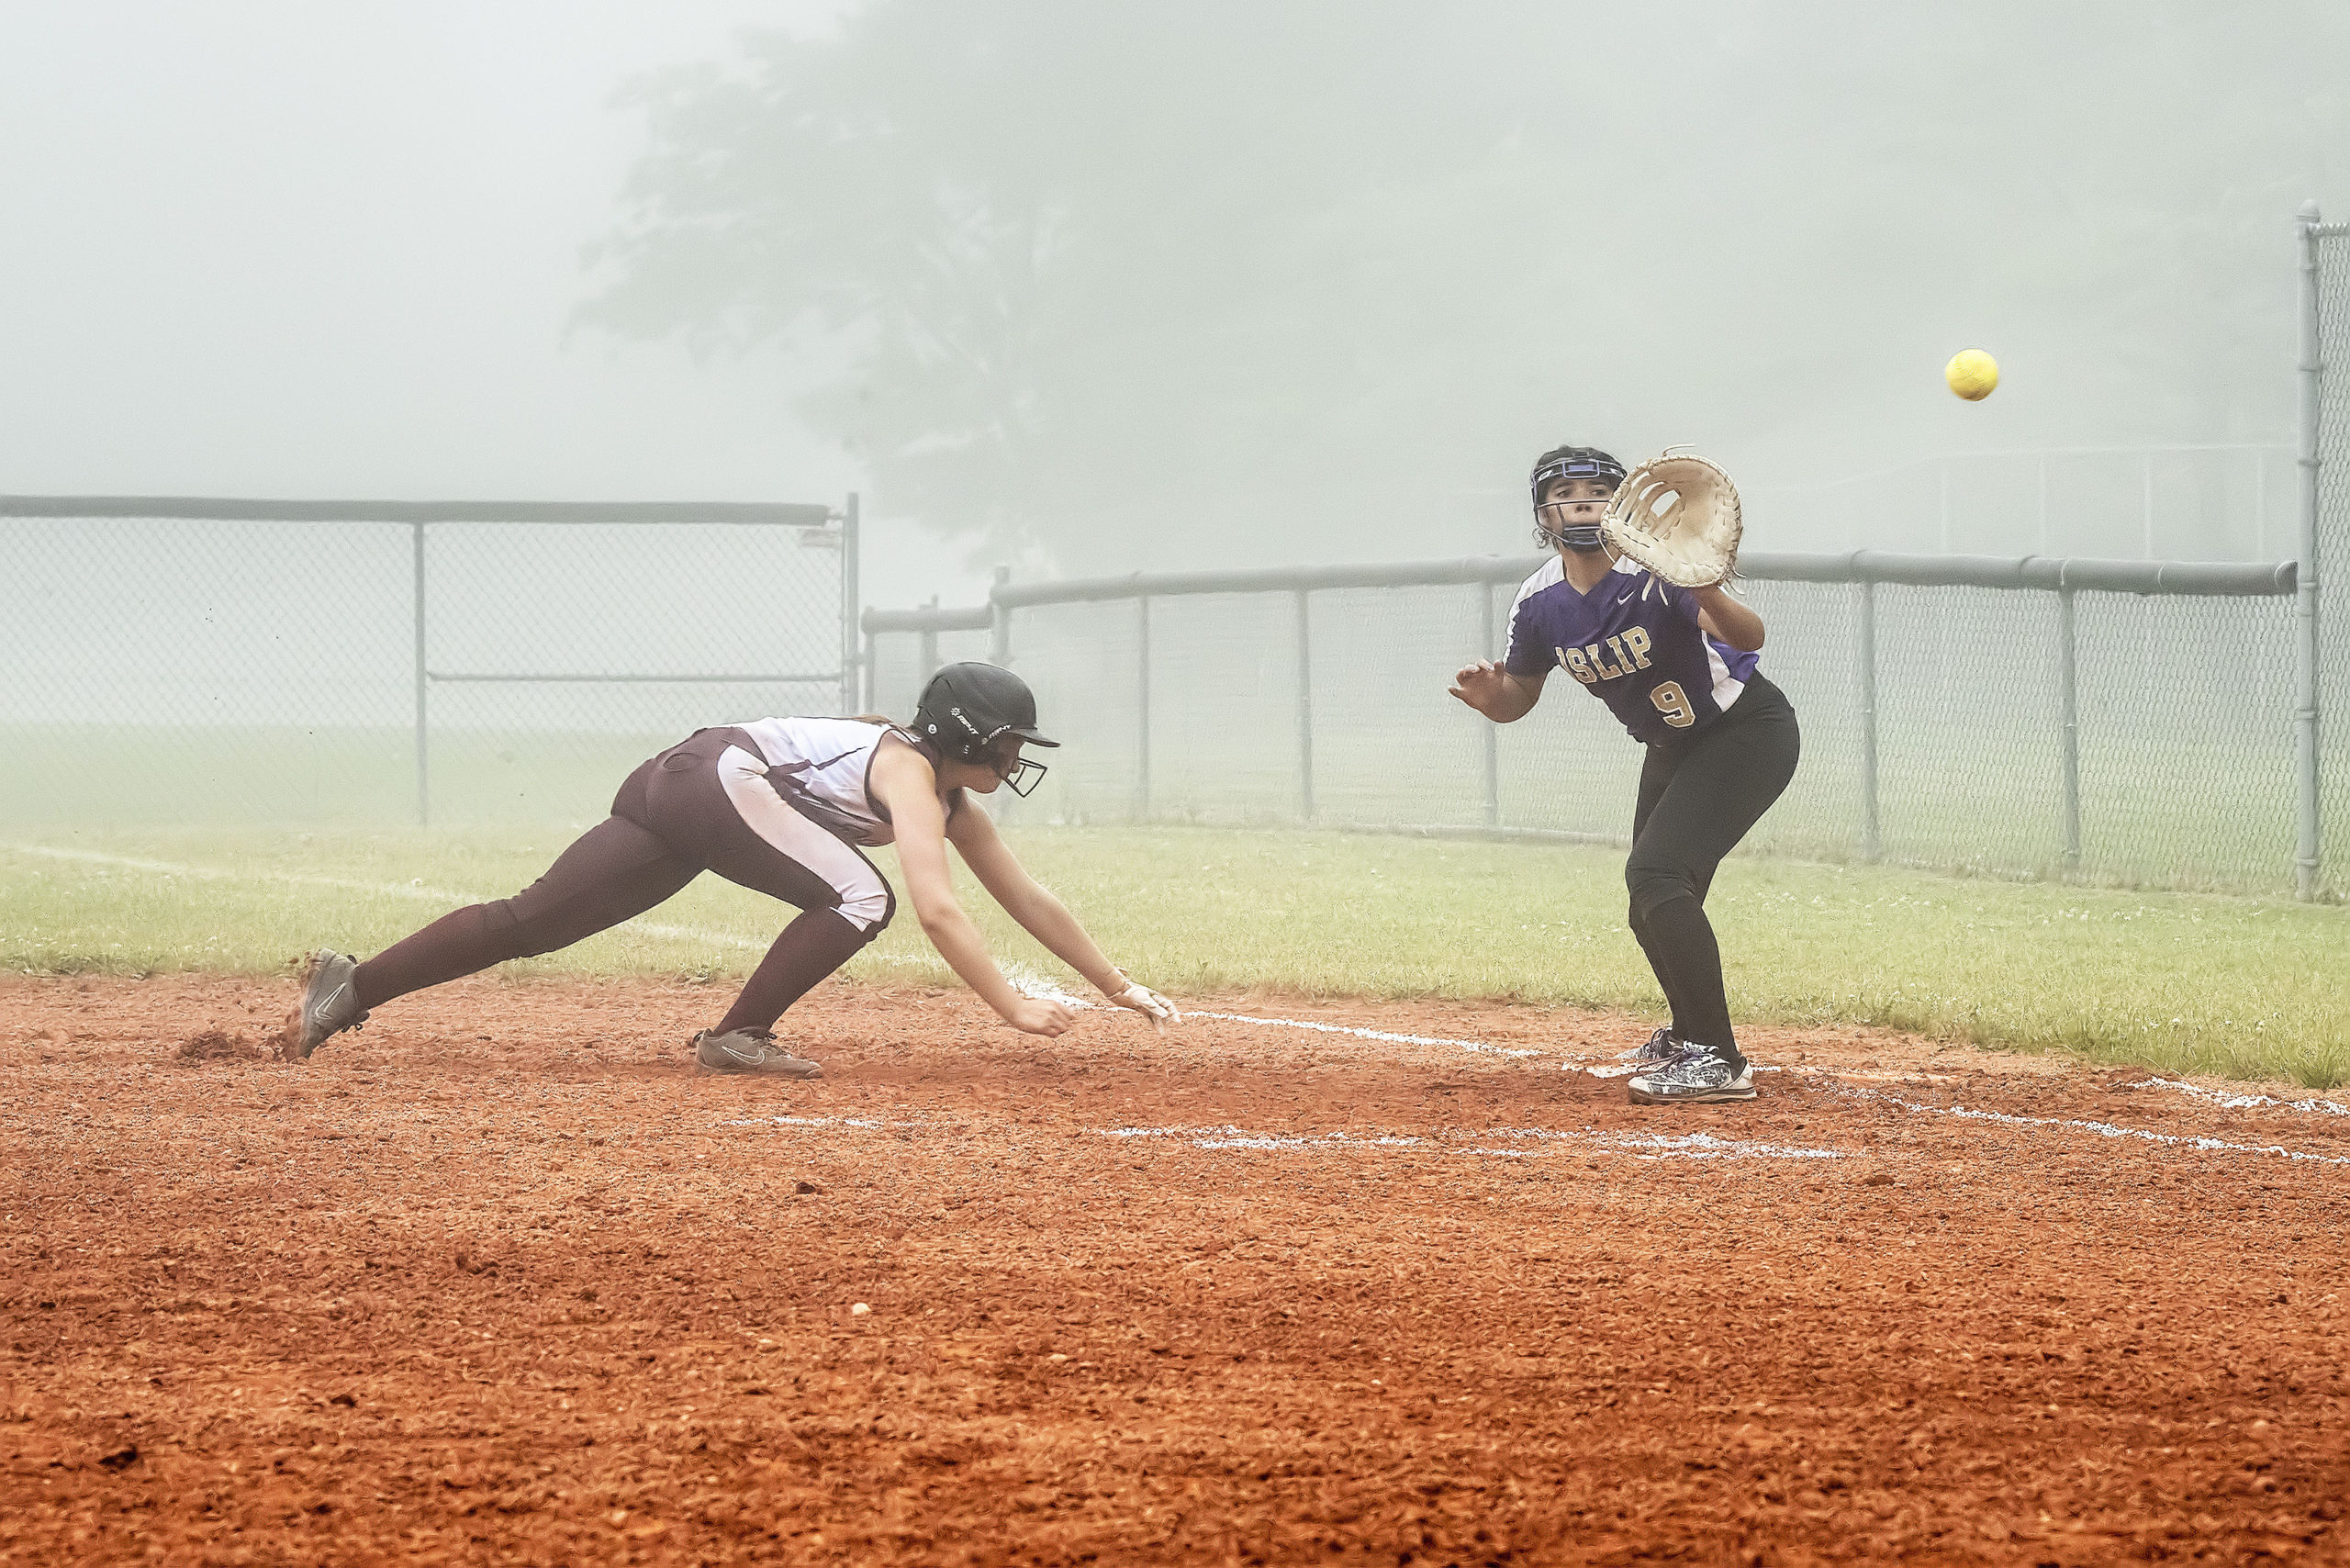 Junior Bonacker Leah Masi dives back to first base to avoid being picked off.